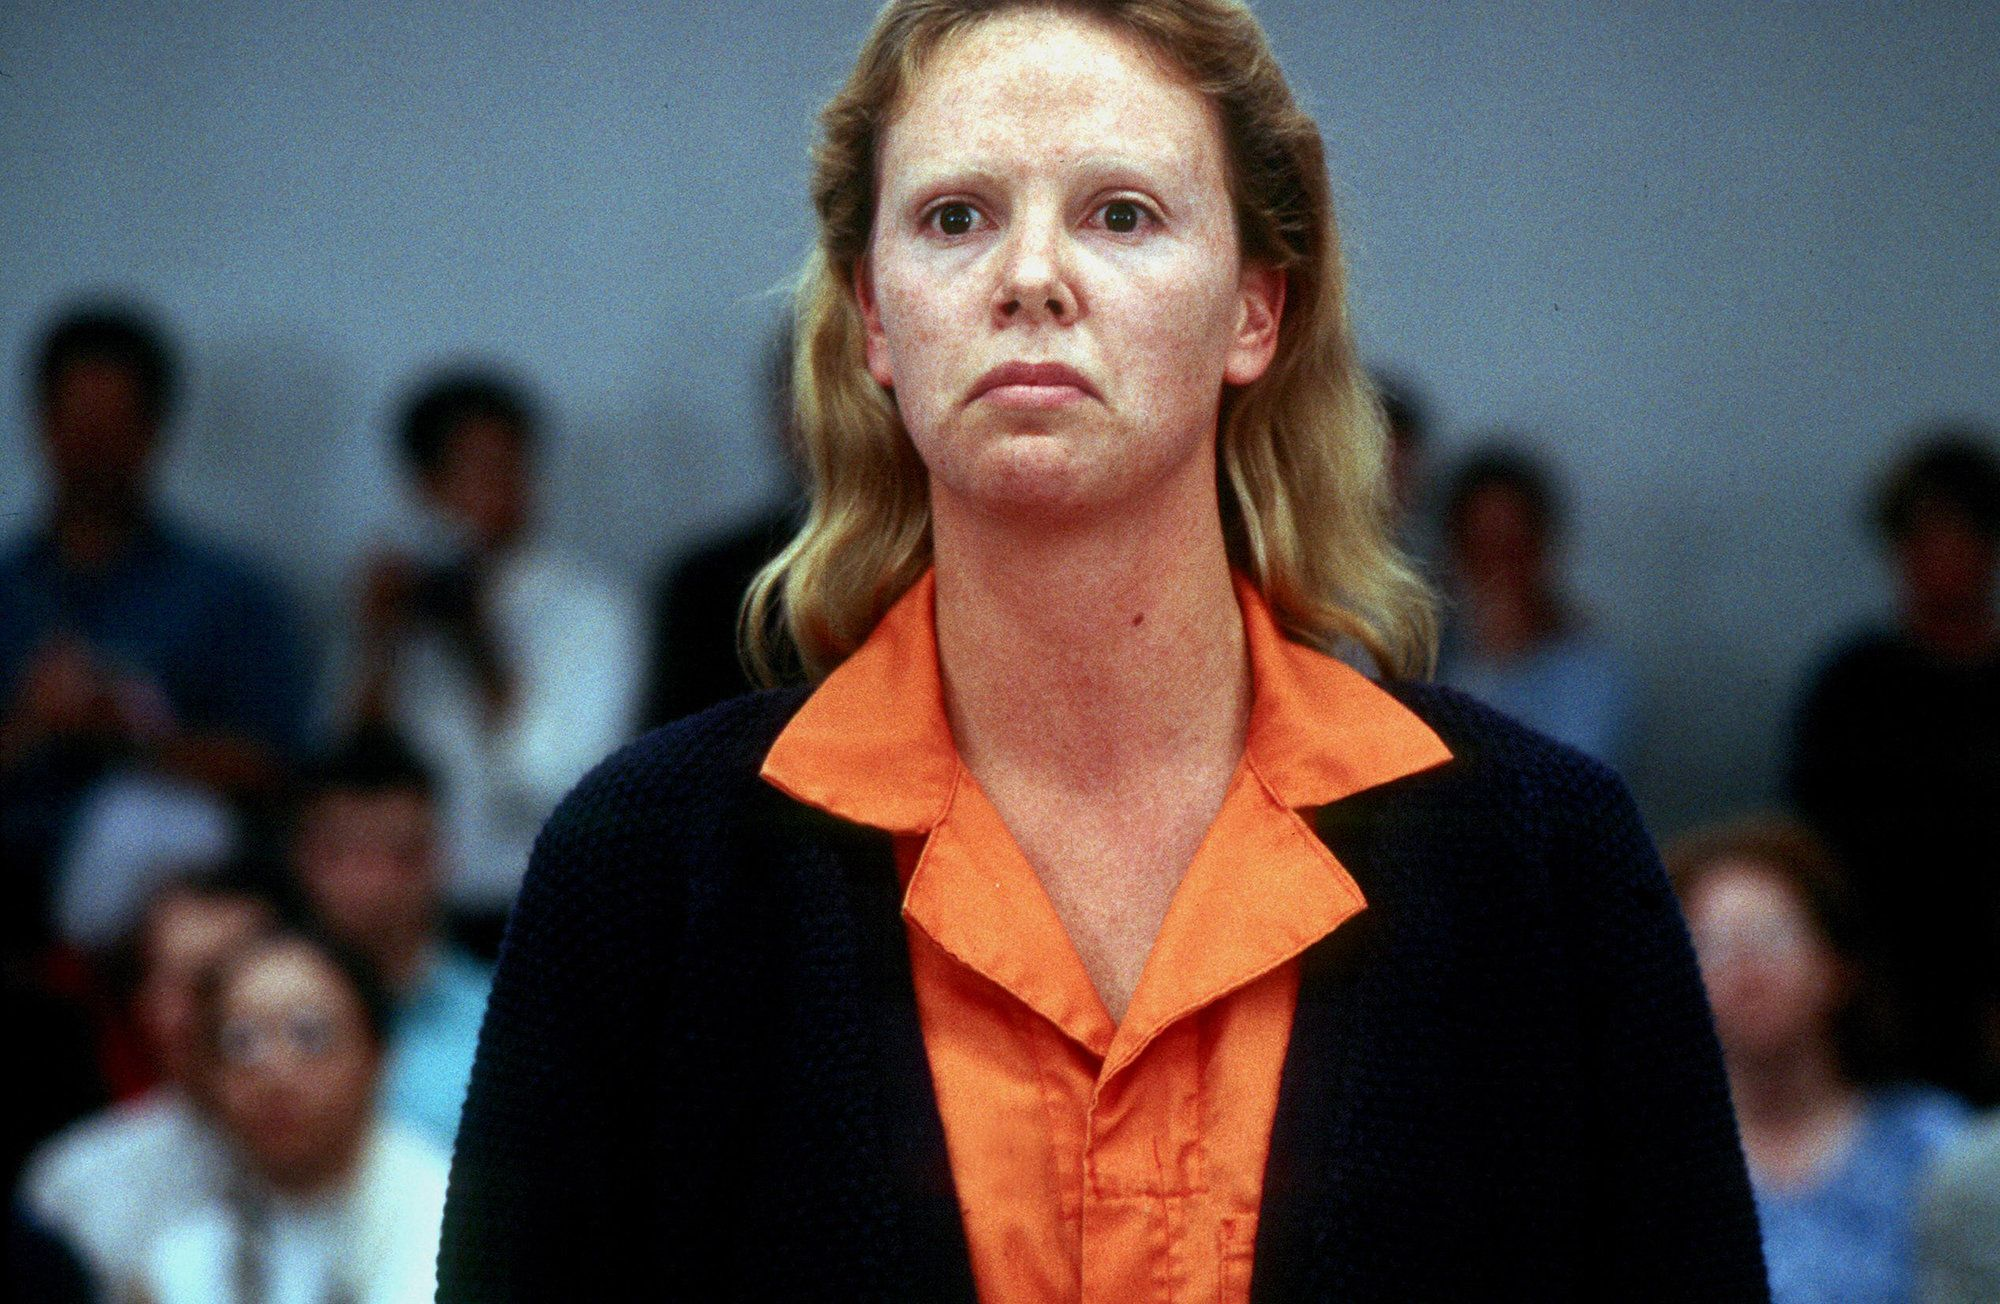 Charlize Theron as Aileen Wuornos in Monster (2003)